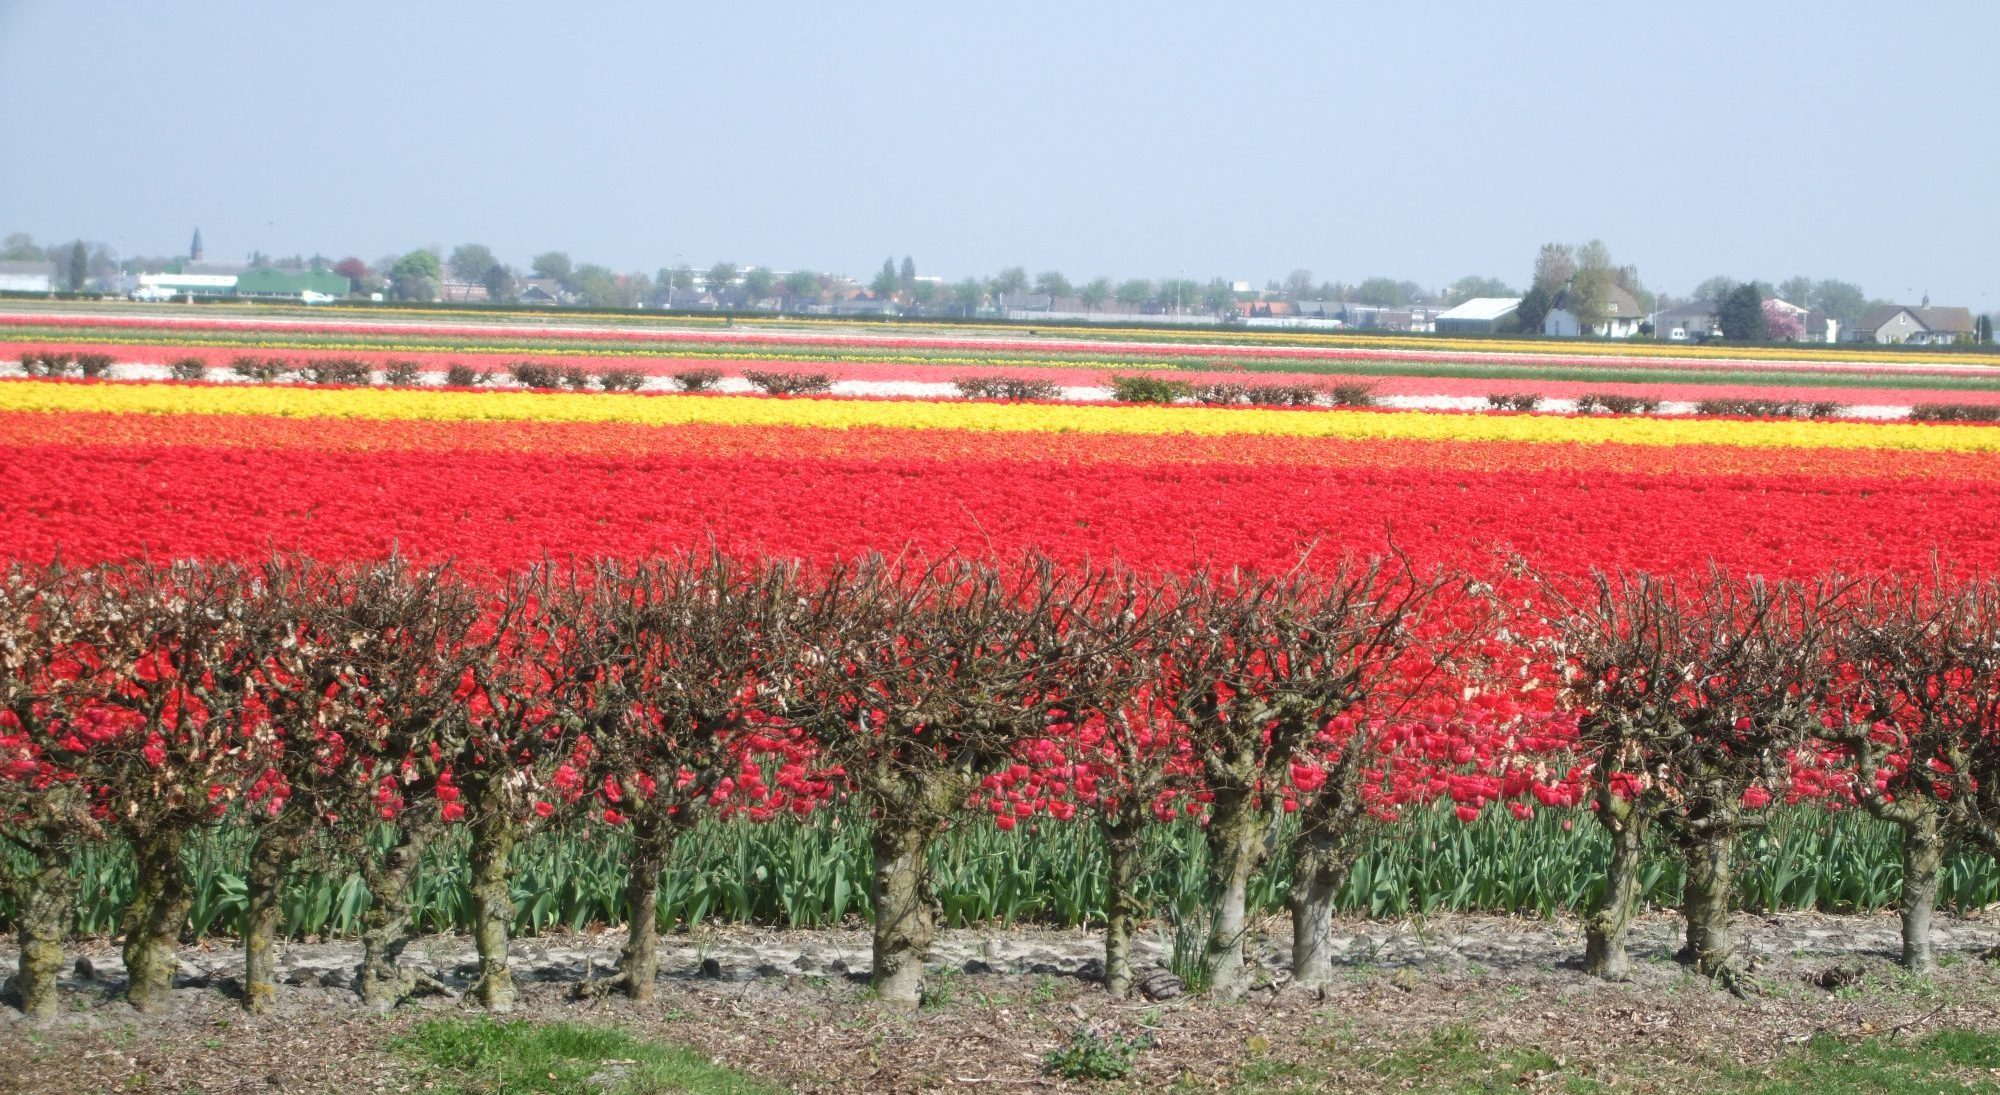 Bollenstreekroute Day Trips from Amsterdam, Visiting Dutch Gardens   Rachel's Ruminations